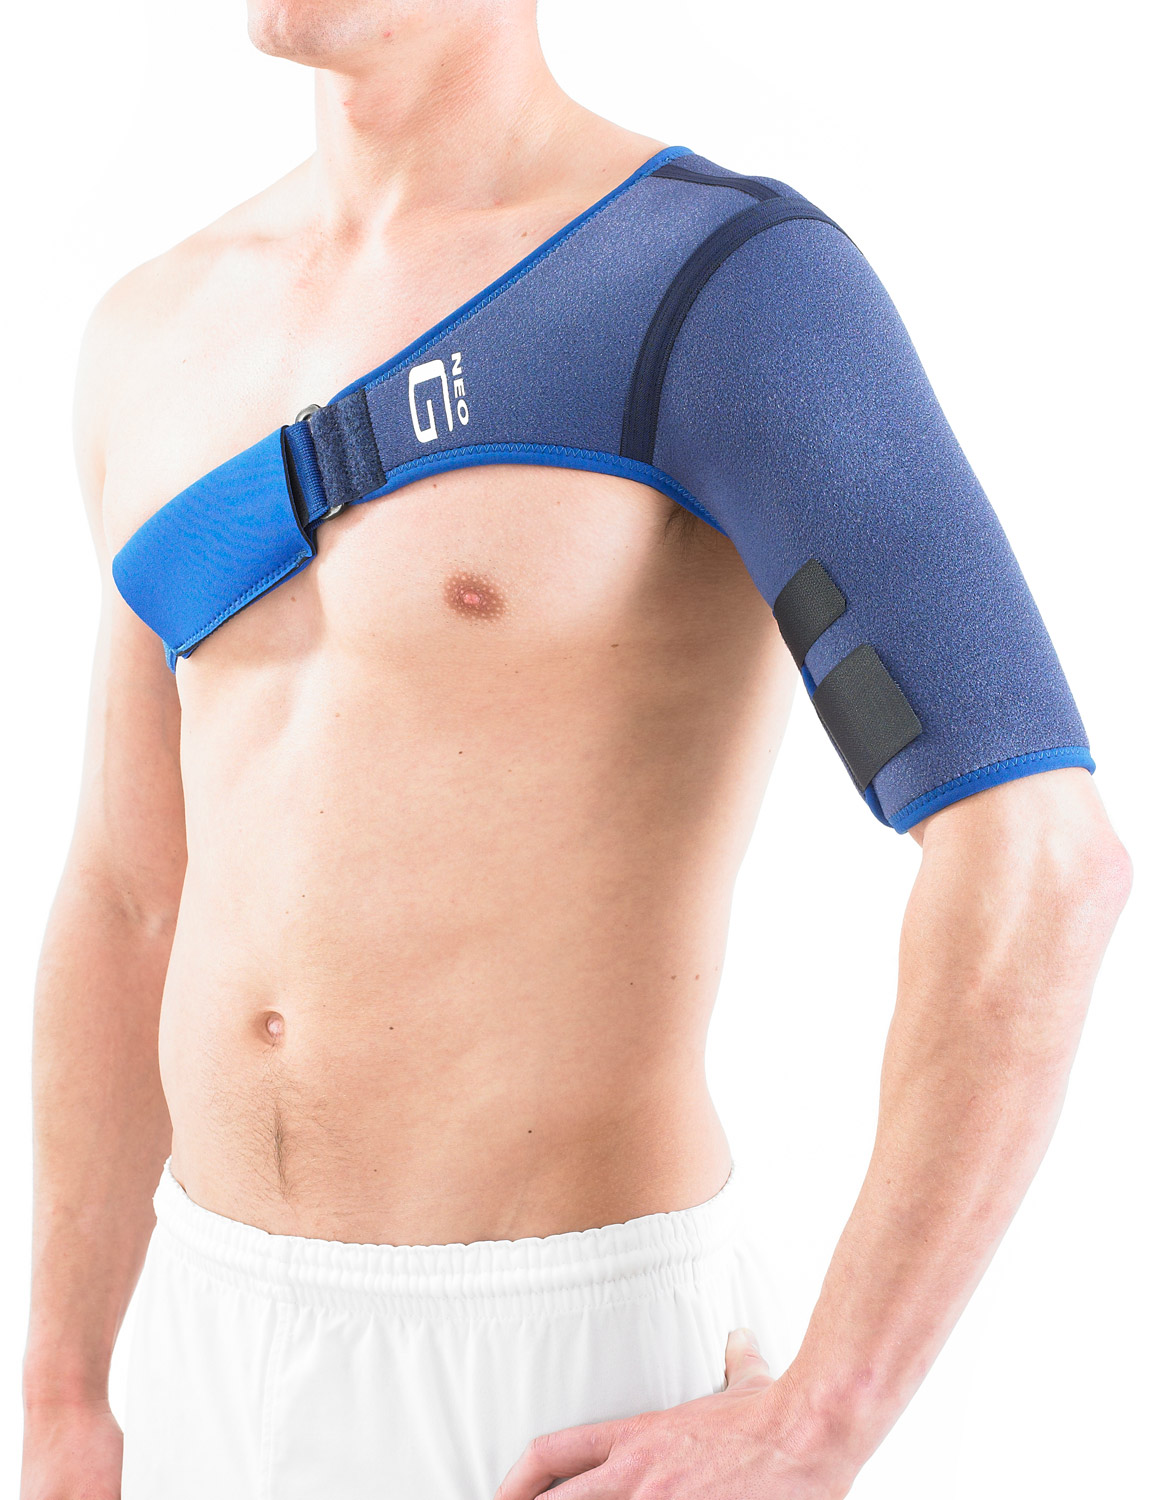 896 - SHOULDER SUPPORT  By stabilizing the whole shoulder the support helps to reduce strain on the shoulder capsule, ligaments and rotator cuff muscles.